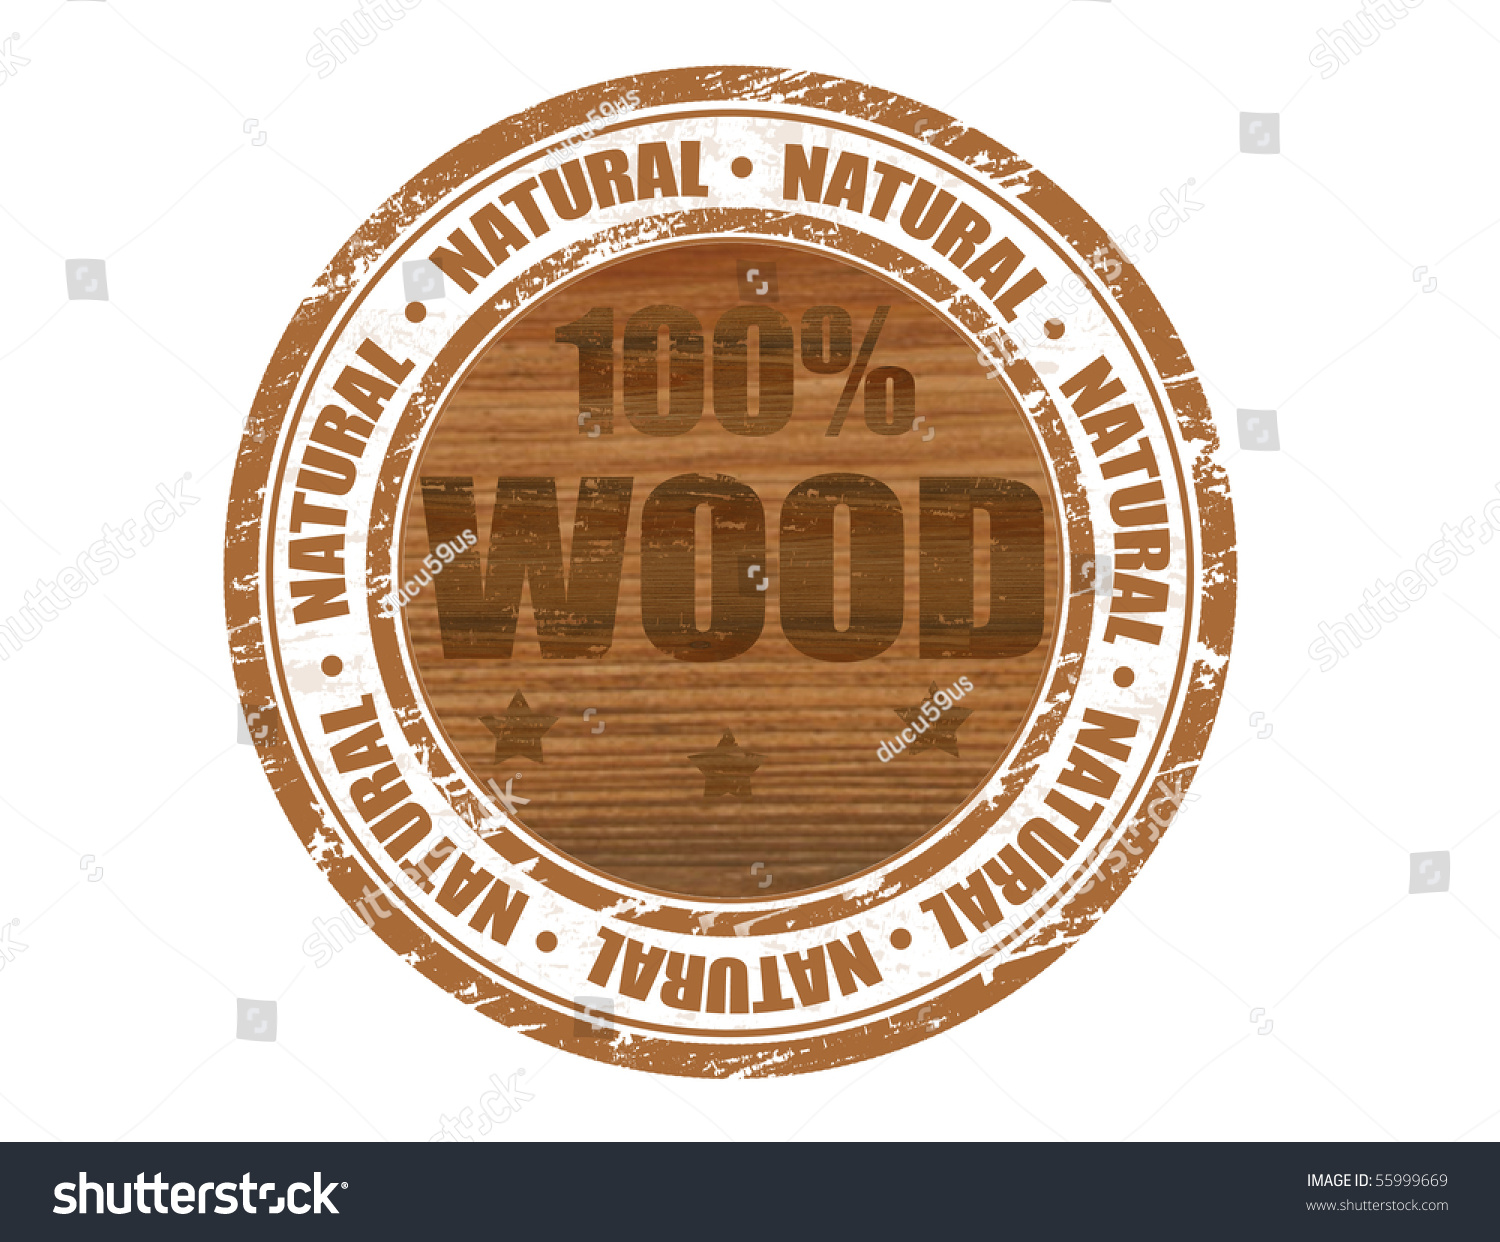 Abstract Brown Grunge Office Rubber Stamp Stock Vector ...